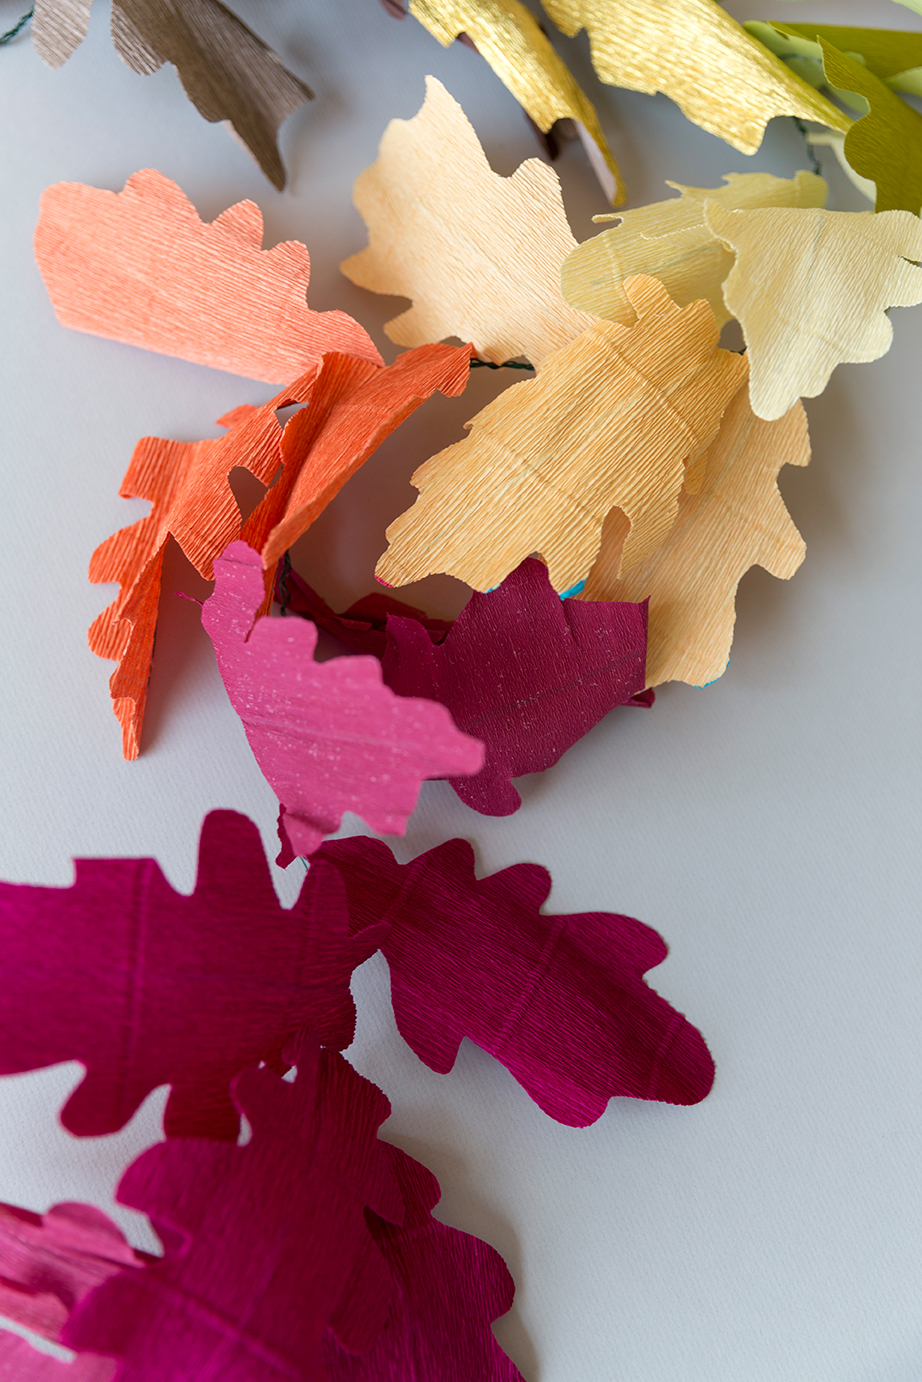 Diy Paper Leaf Fall Garland Page 2 Of 2 The House That